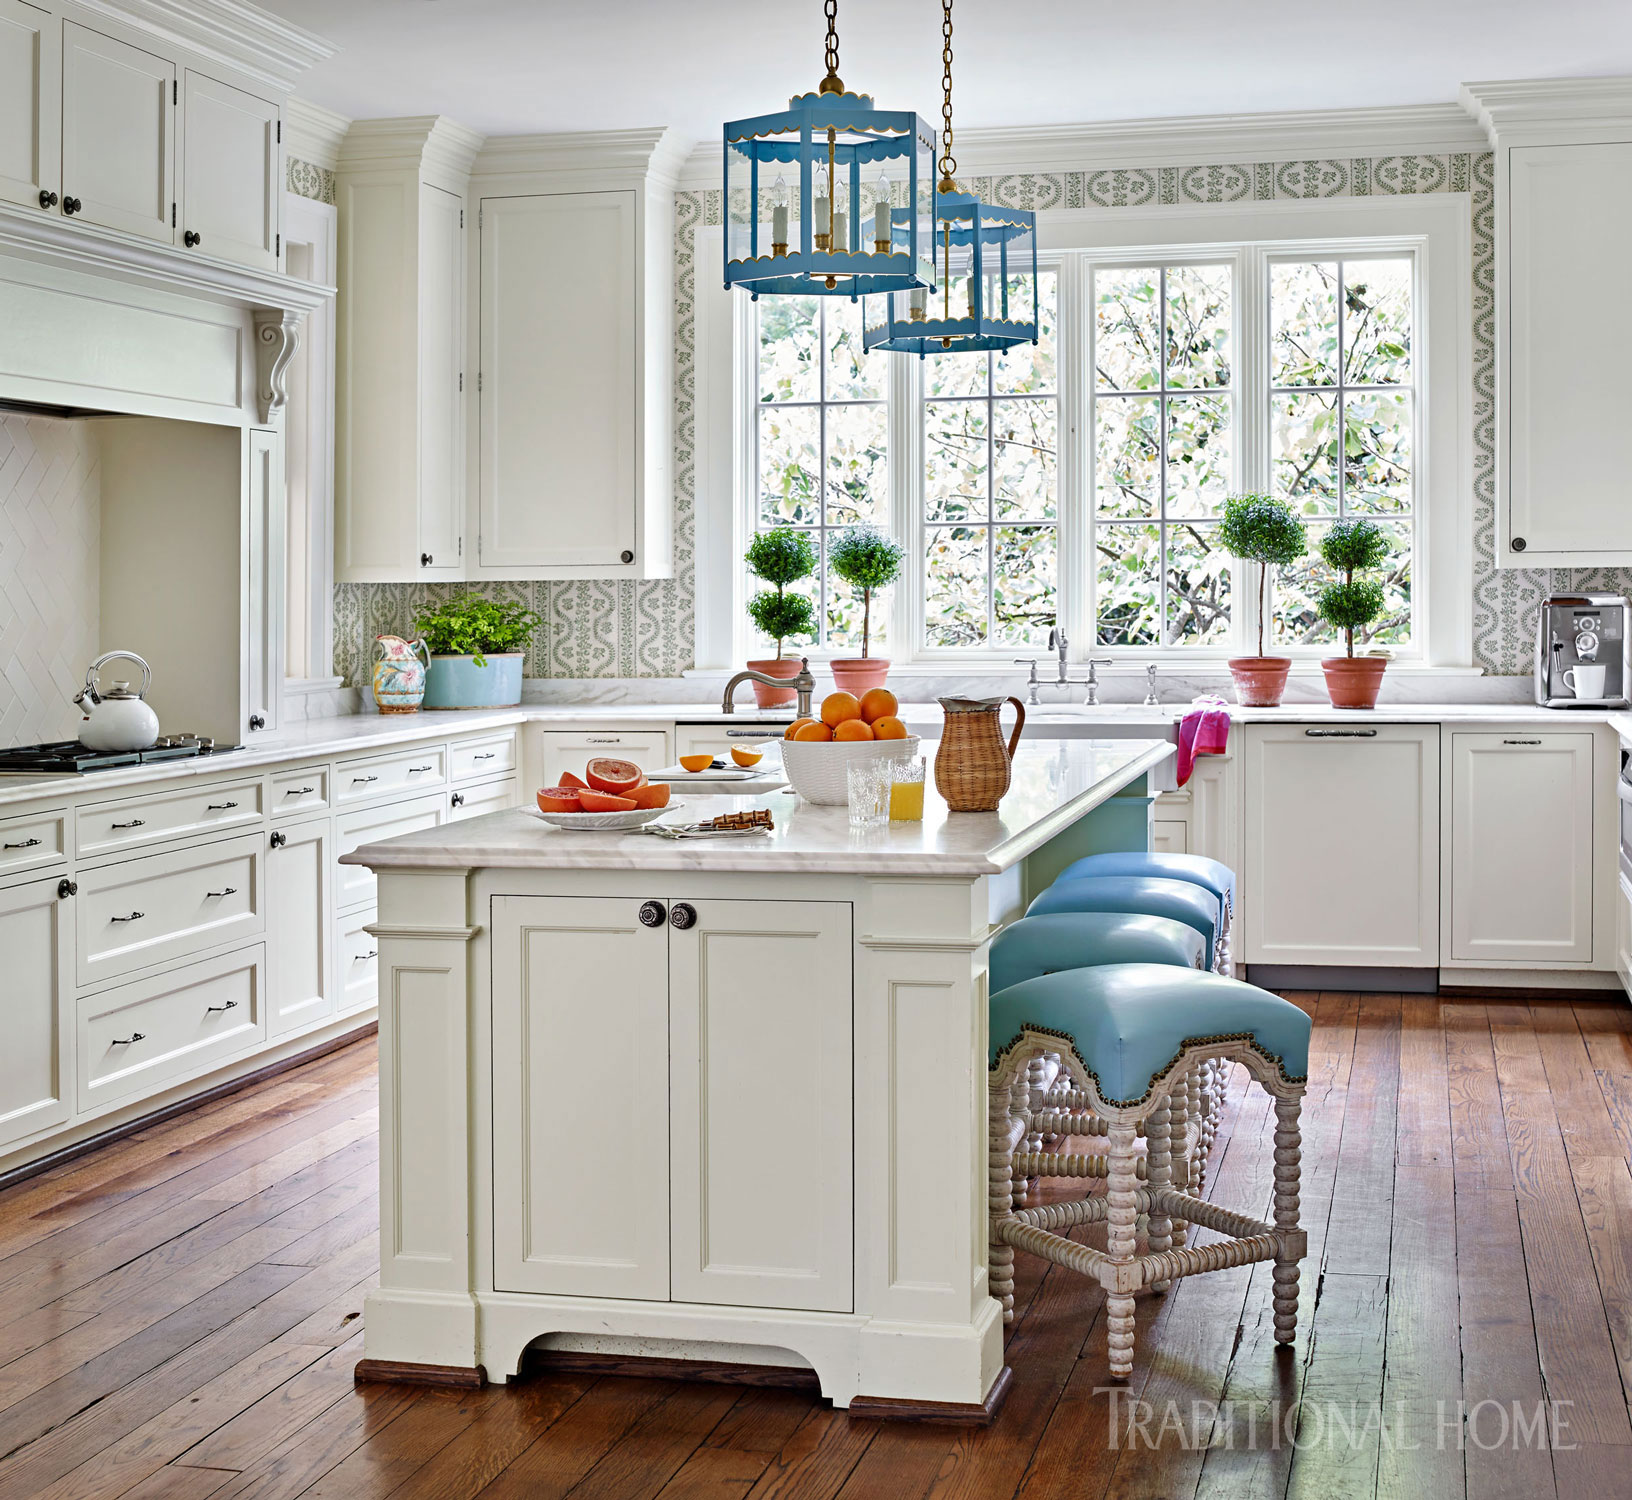 Quiet blues on upholstery and the Coleen & Company scalloped hanging lanterns dot the all-white kitchen.